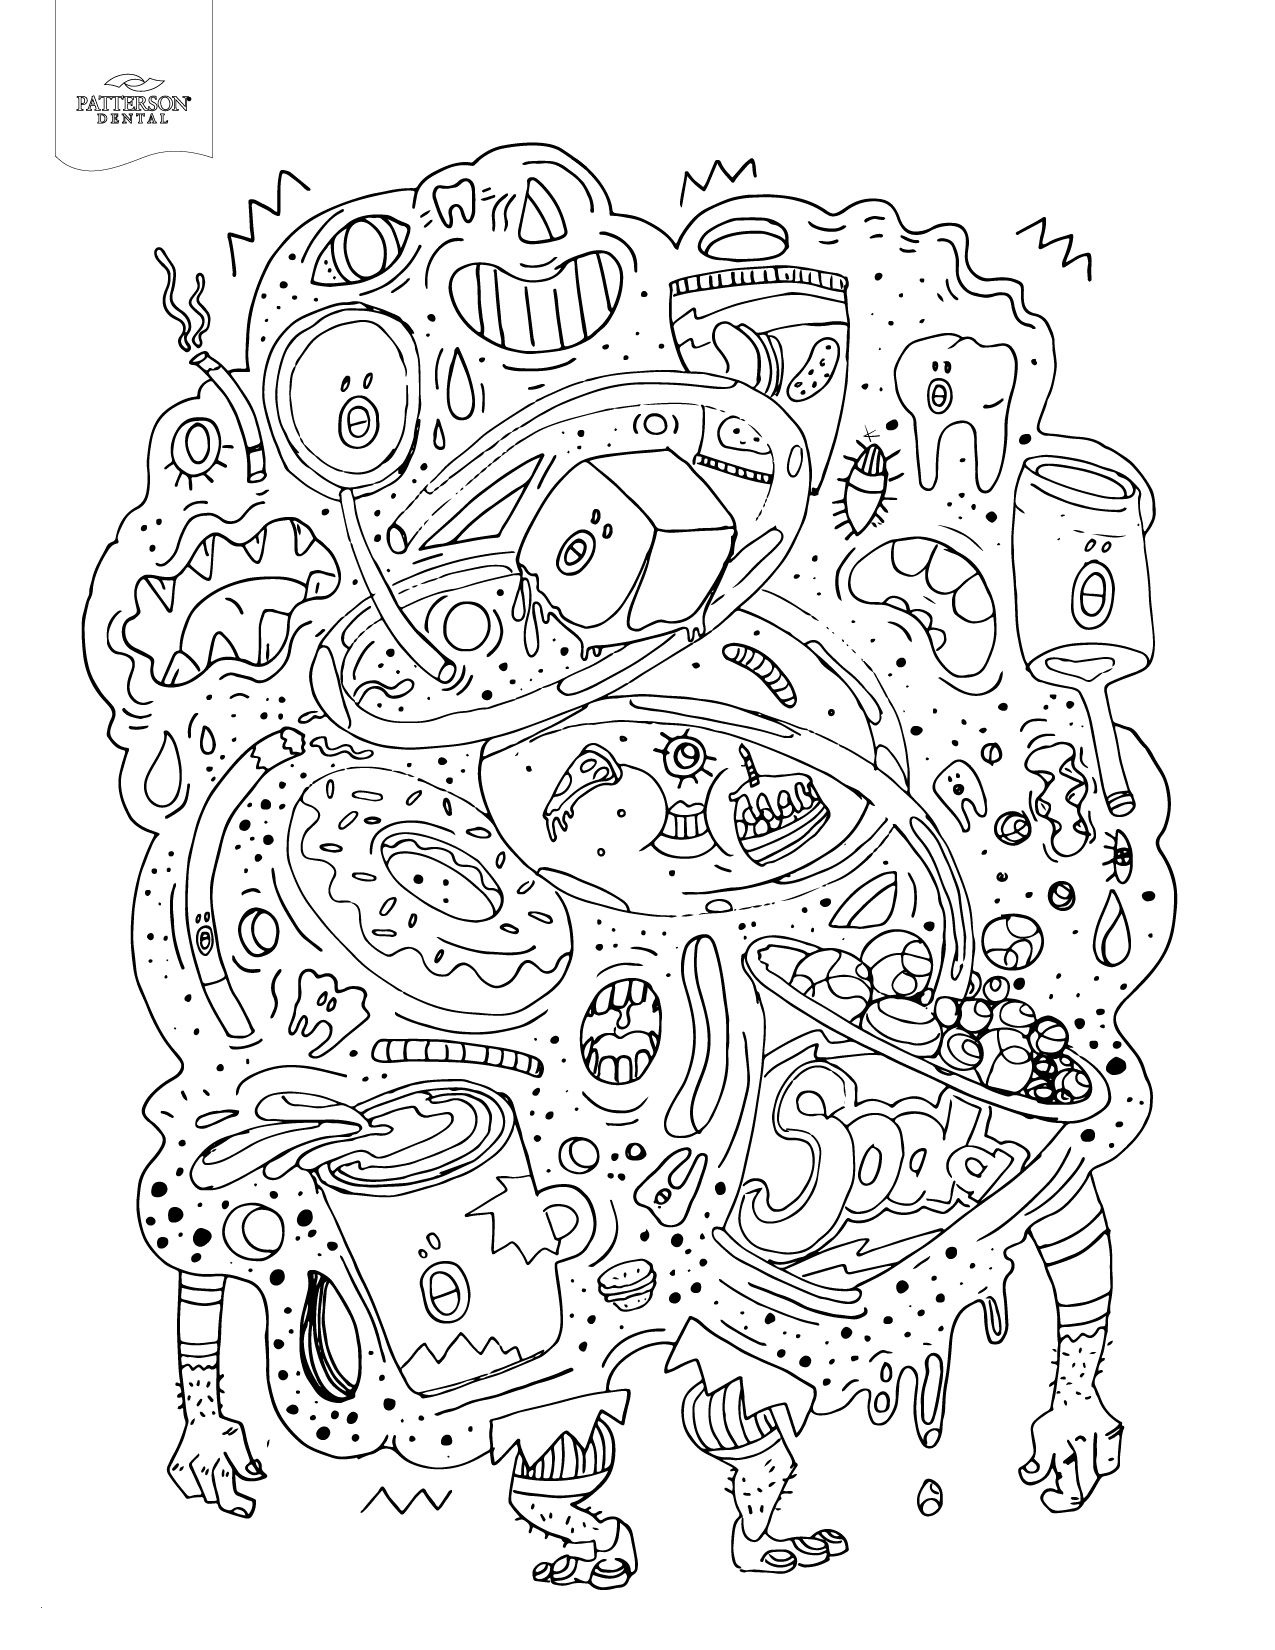 Unhealthy Food Coloring Pages  Collection 14n - To print for your project